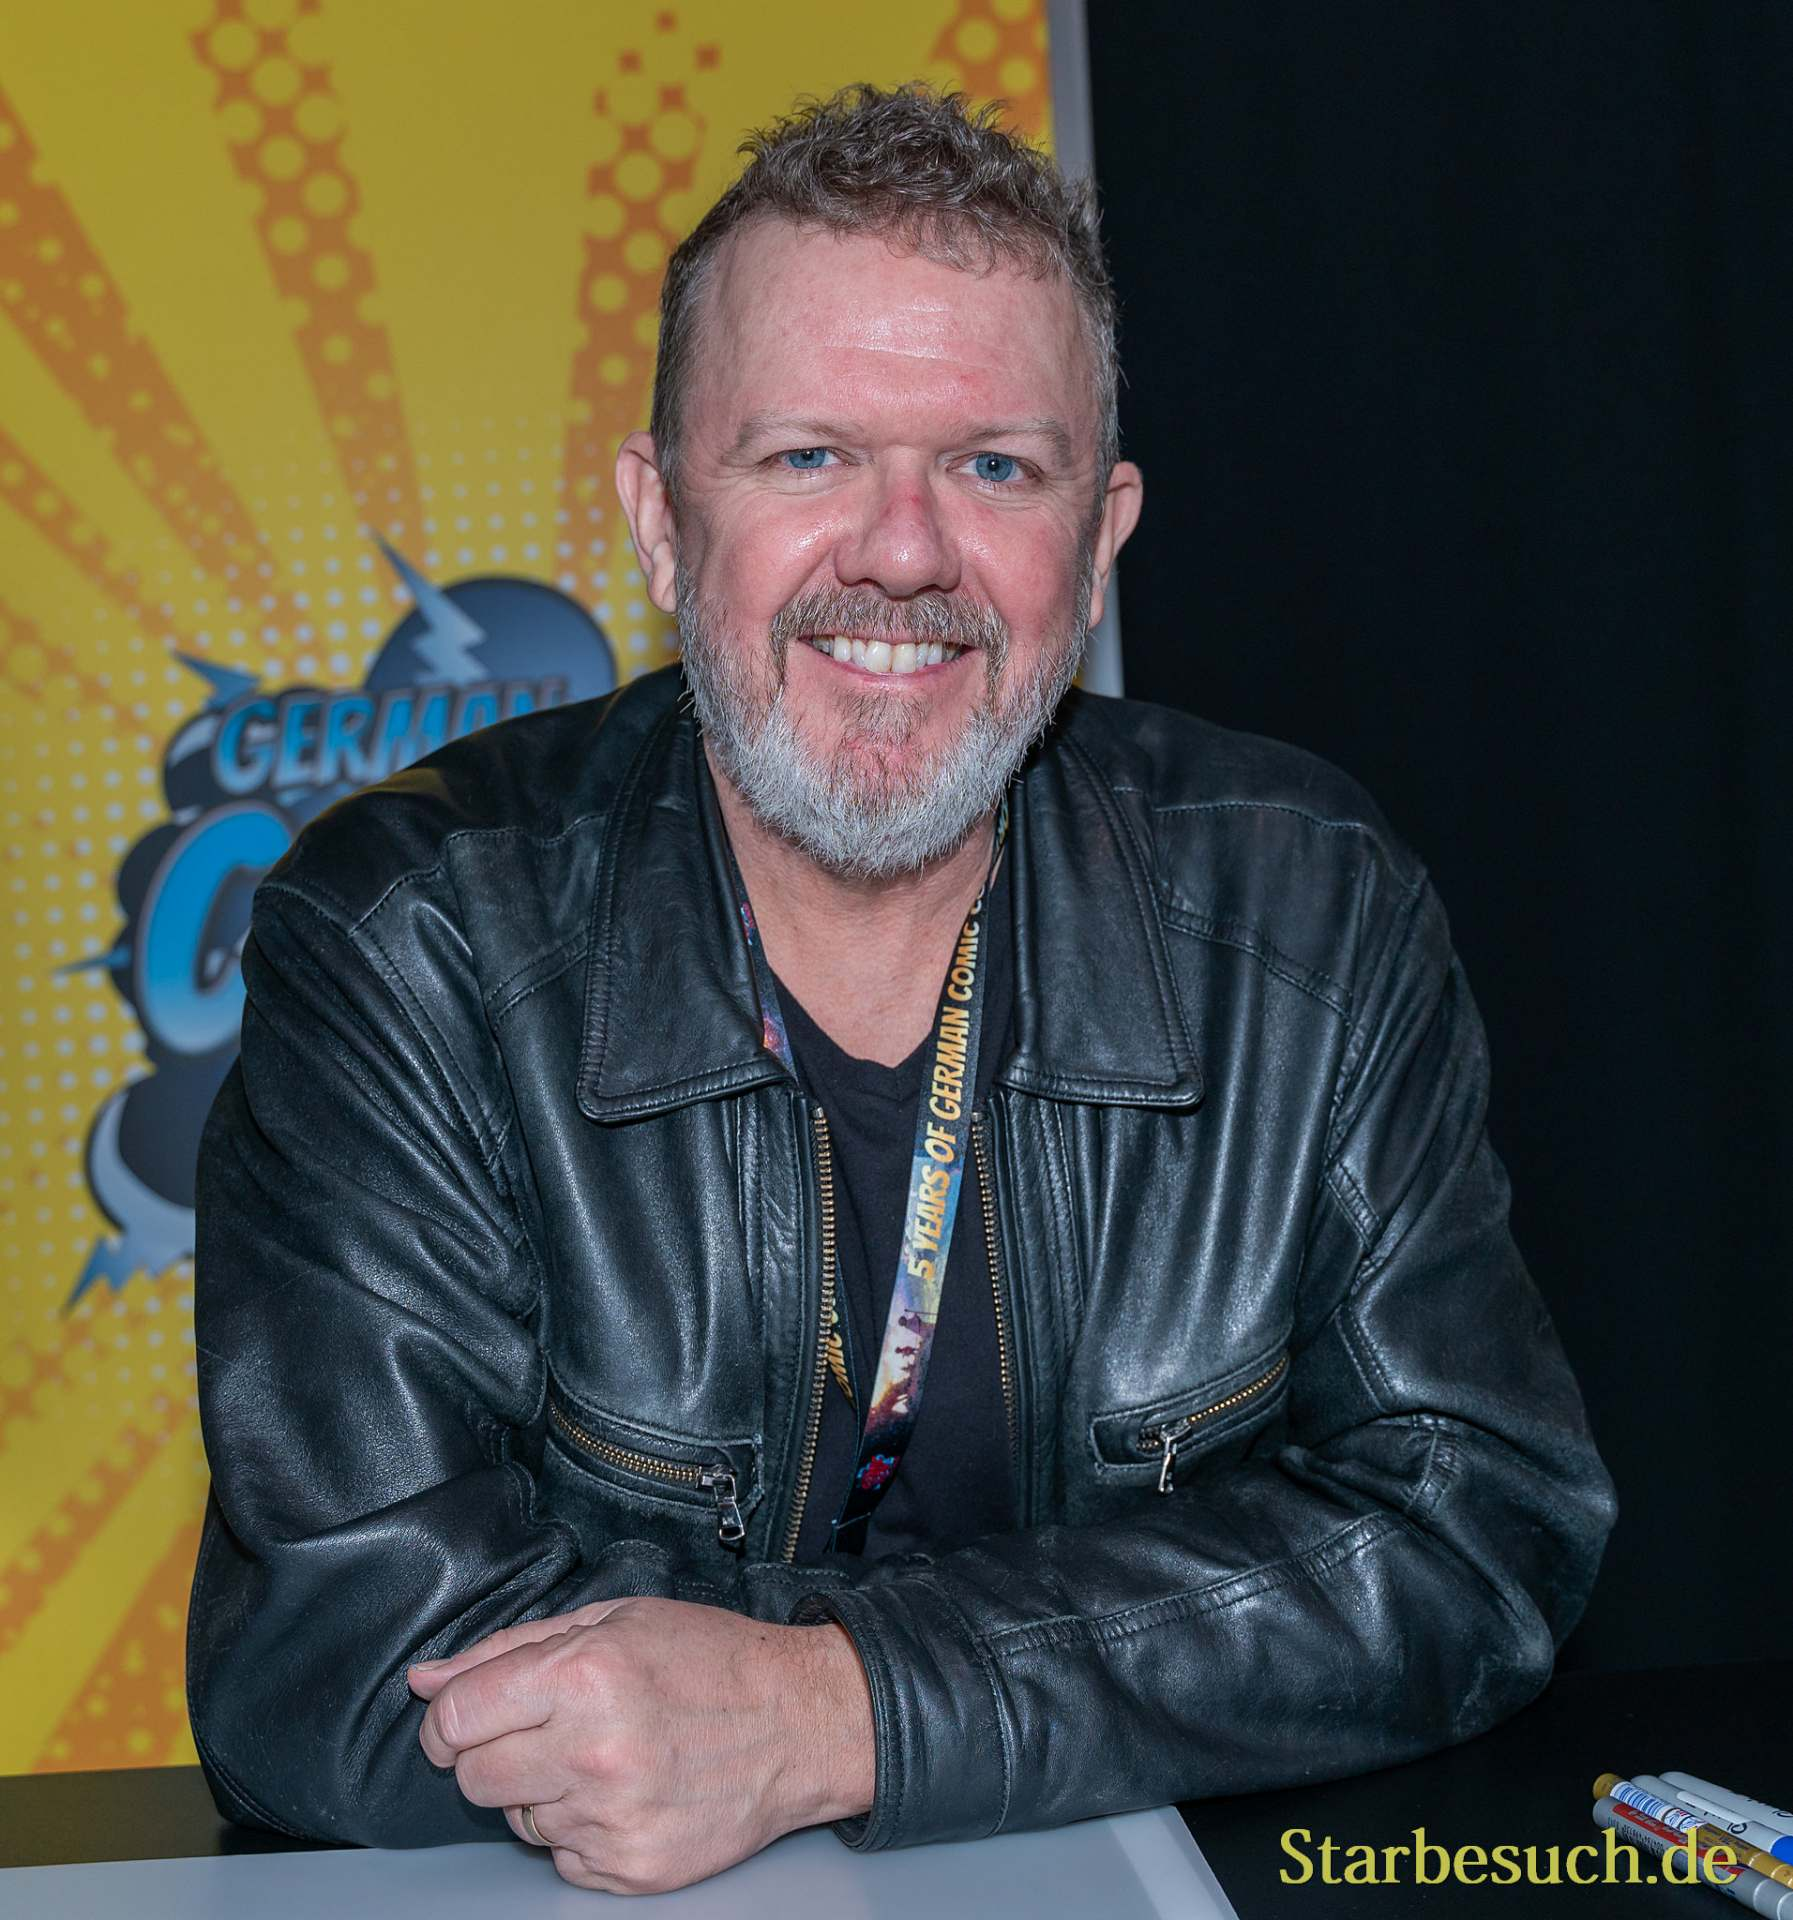 DORTMUND, GERMANY - December 8th 2019: Robert MacNaughton at German Comic Con Dortmund